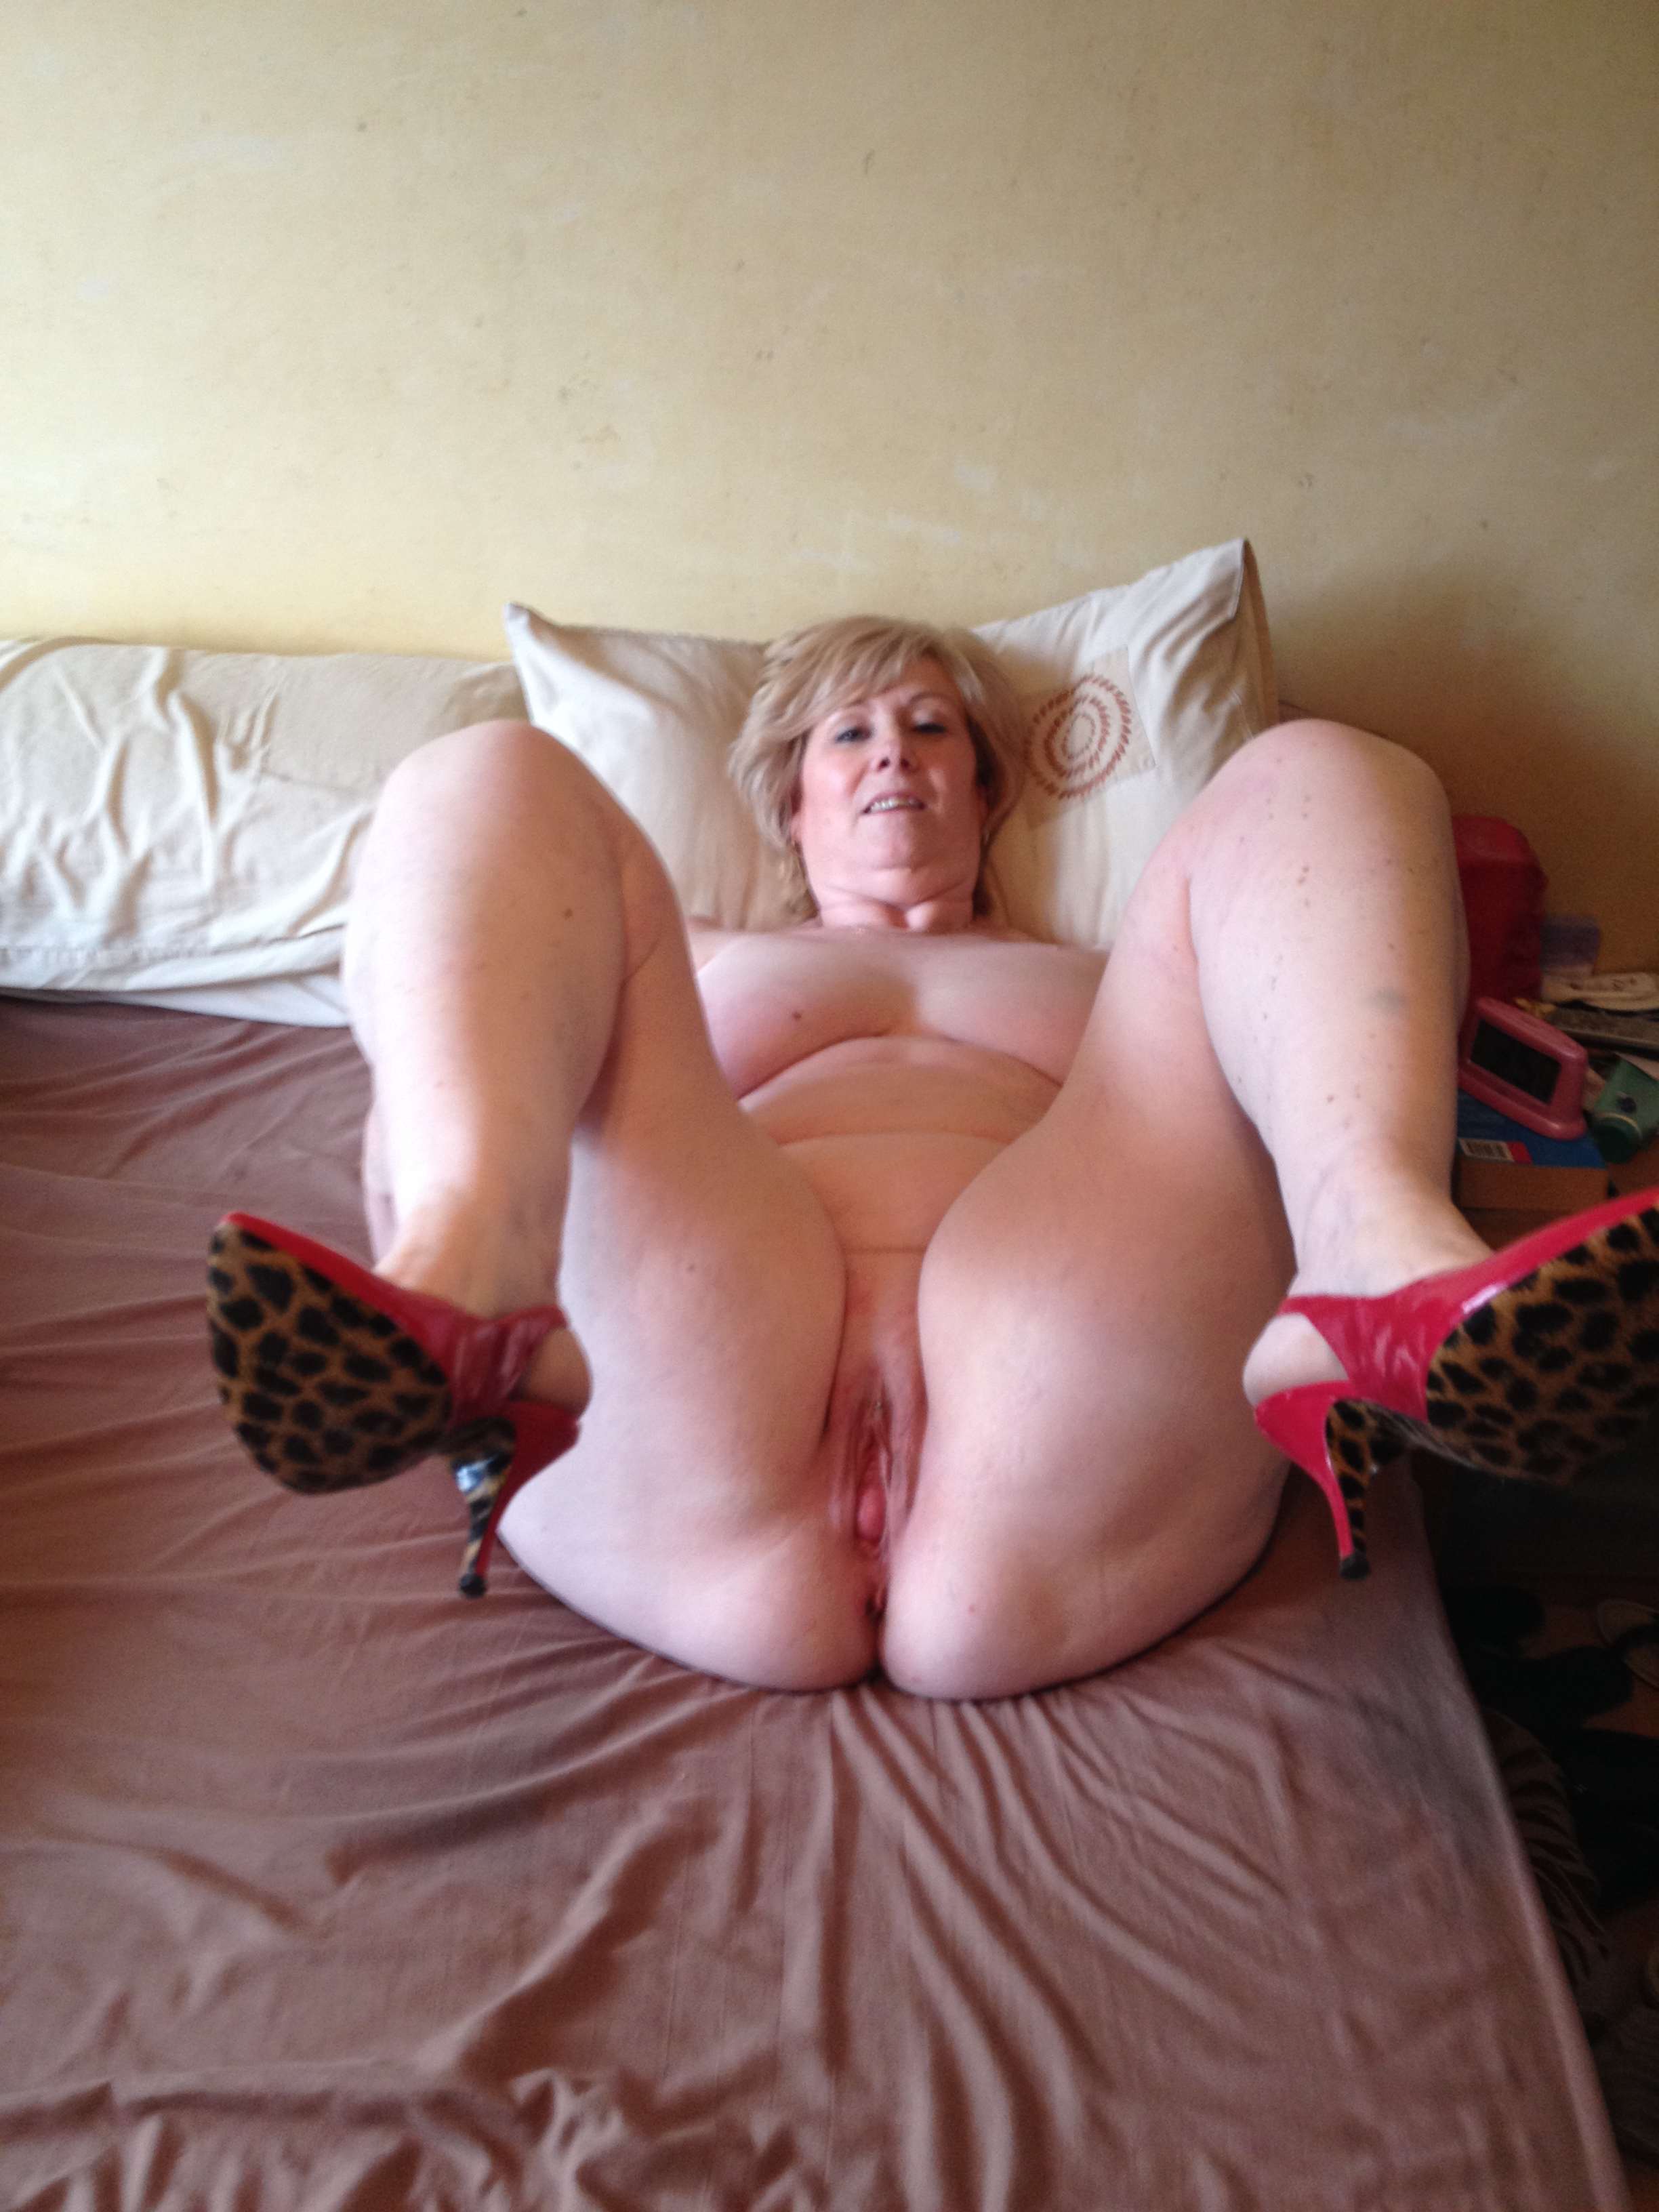 Mature milf bedroom nudes are